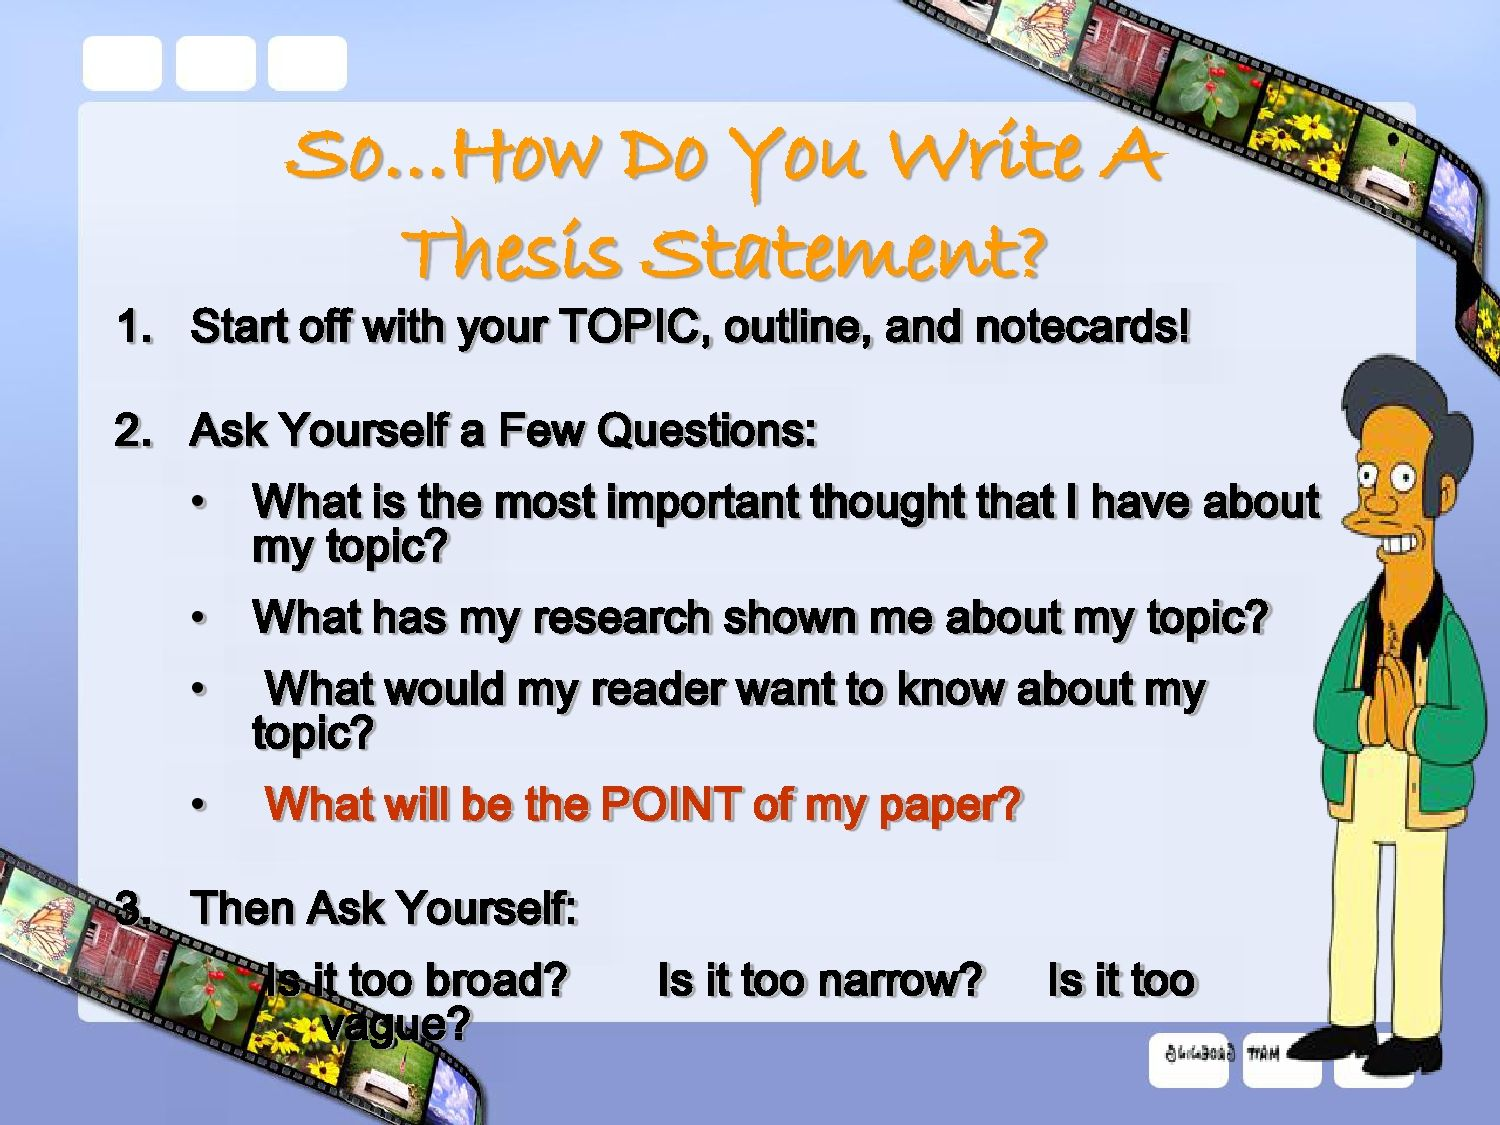 write a thesis statements These thesis statements are generated based on the answers provided on the form use the thesis statement guide as many times as you like your ideas and the results are anonymous and confidential when you build a thesis statement that works for you, ensure that it.